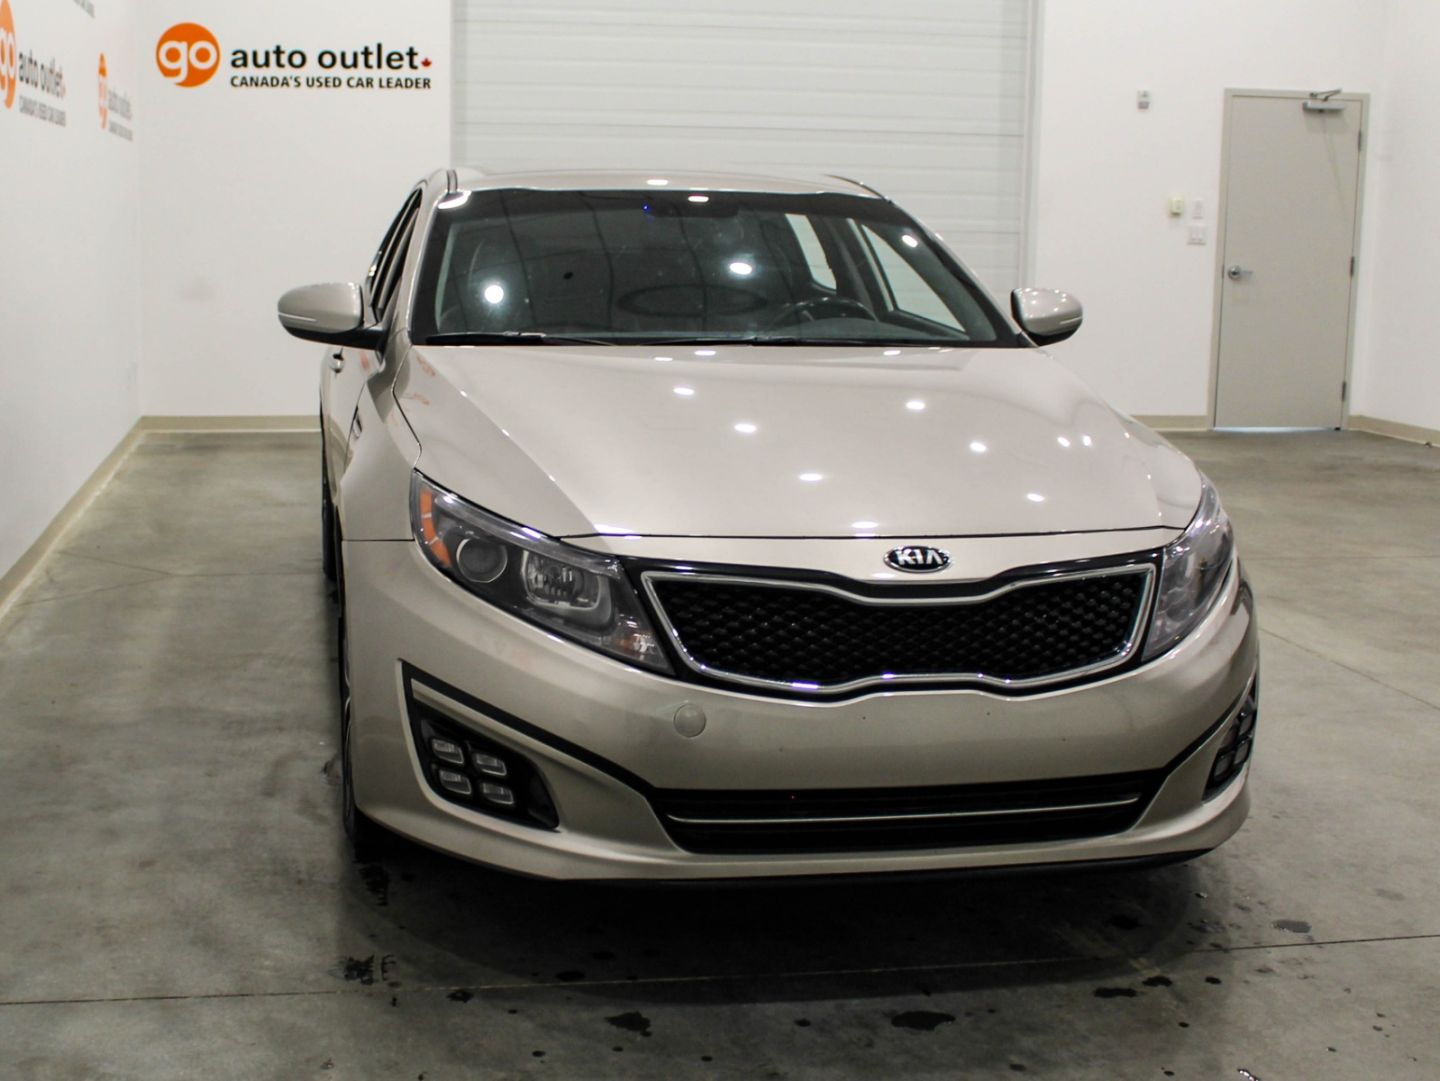 2014 Kia Optima SX for sale in Edmonton, Alberta